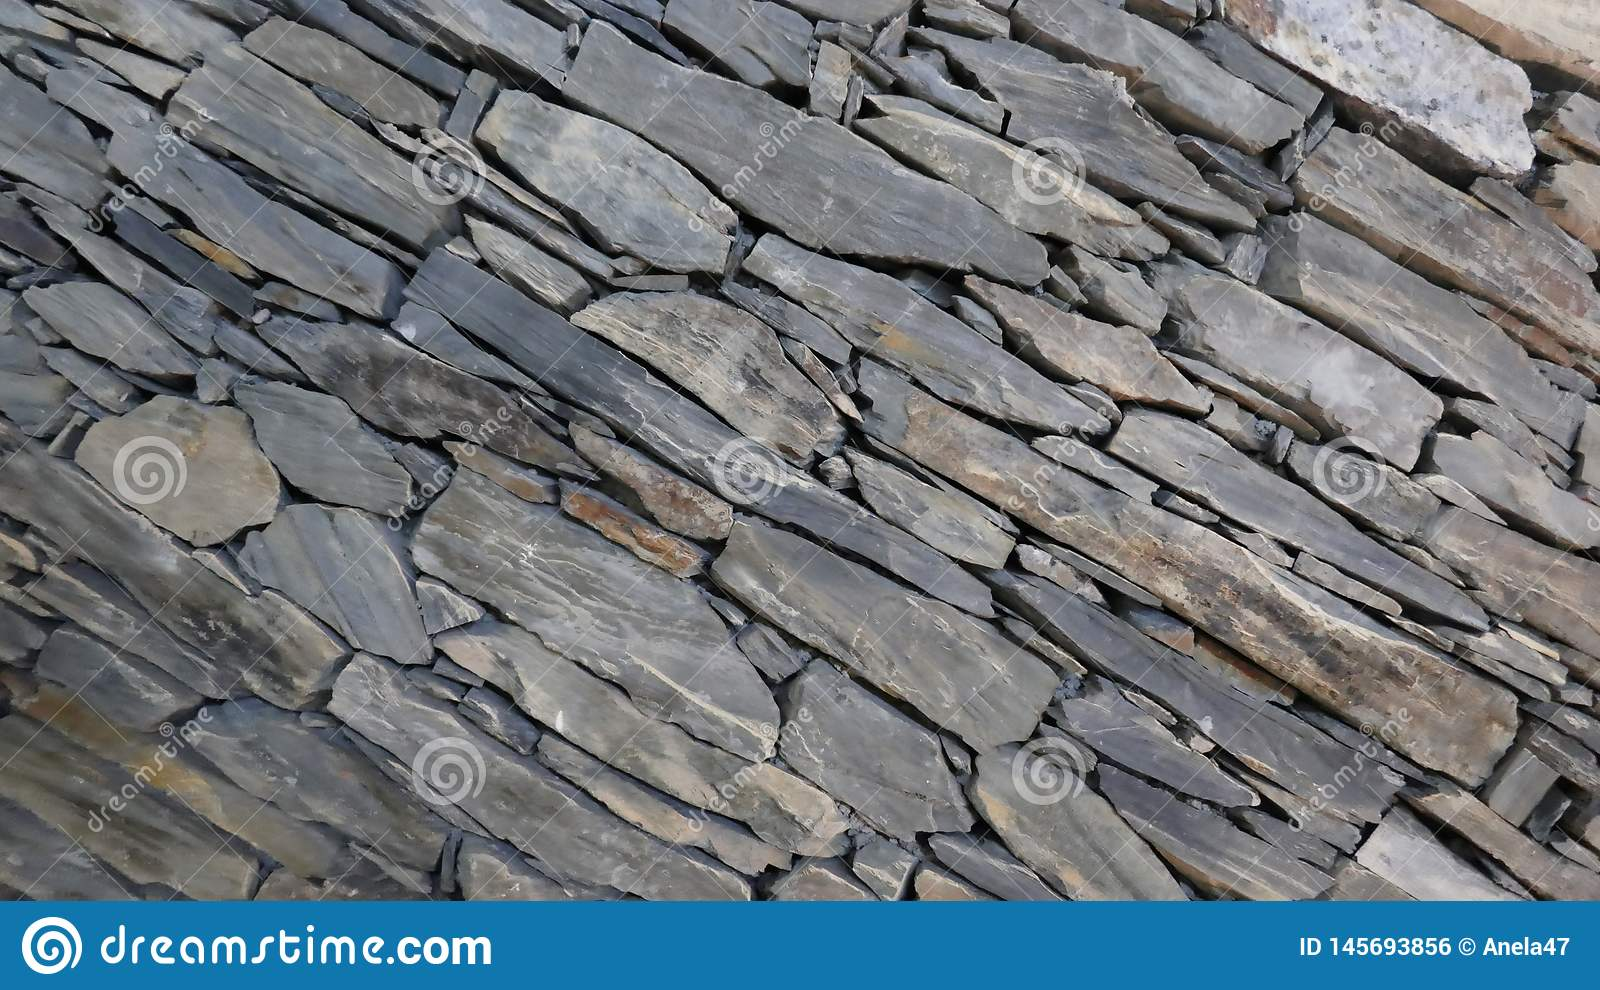 Wall of carefully stacked nature stone pieces.